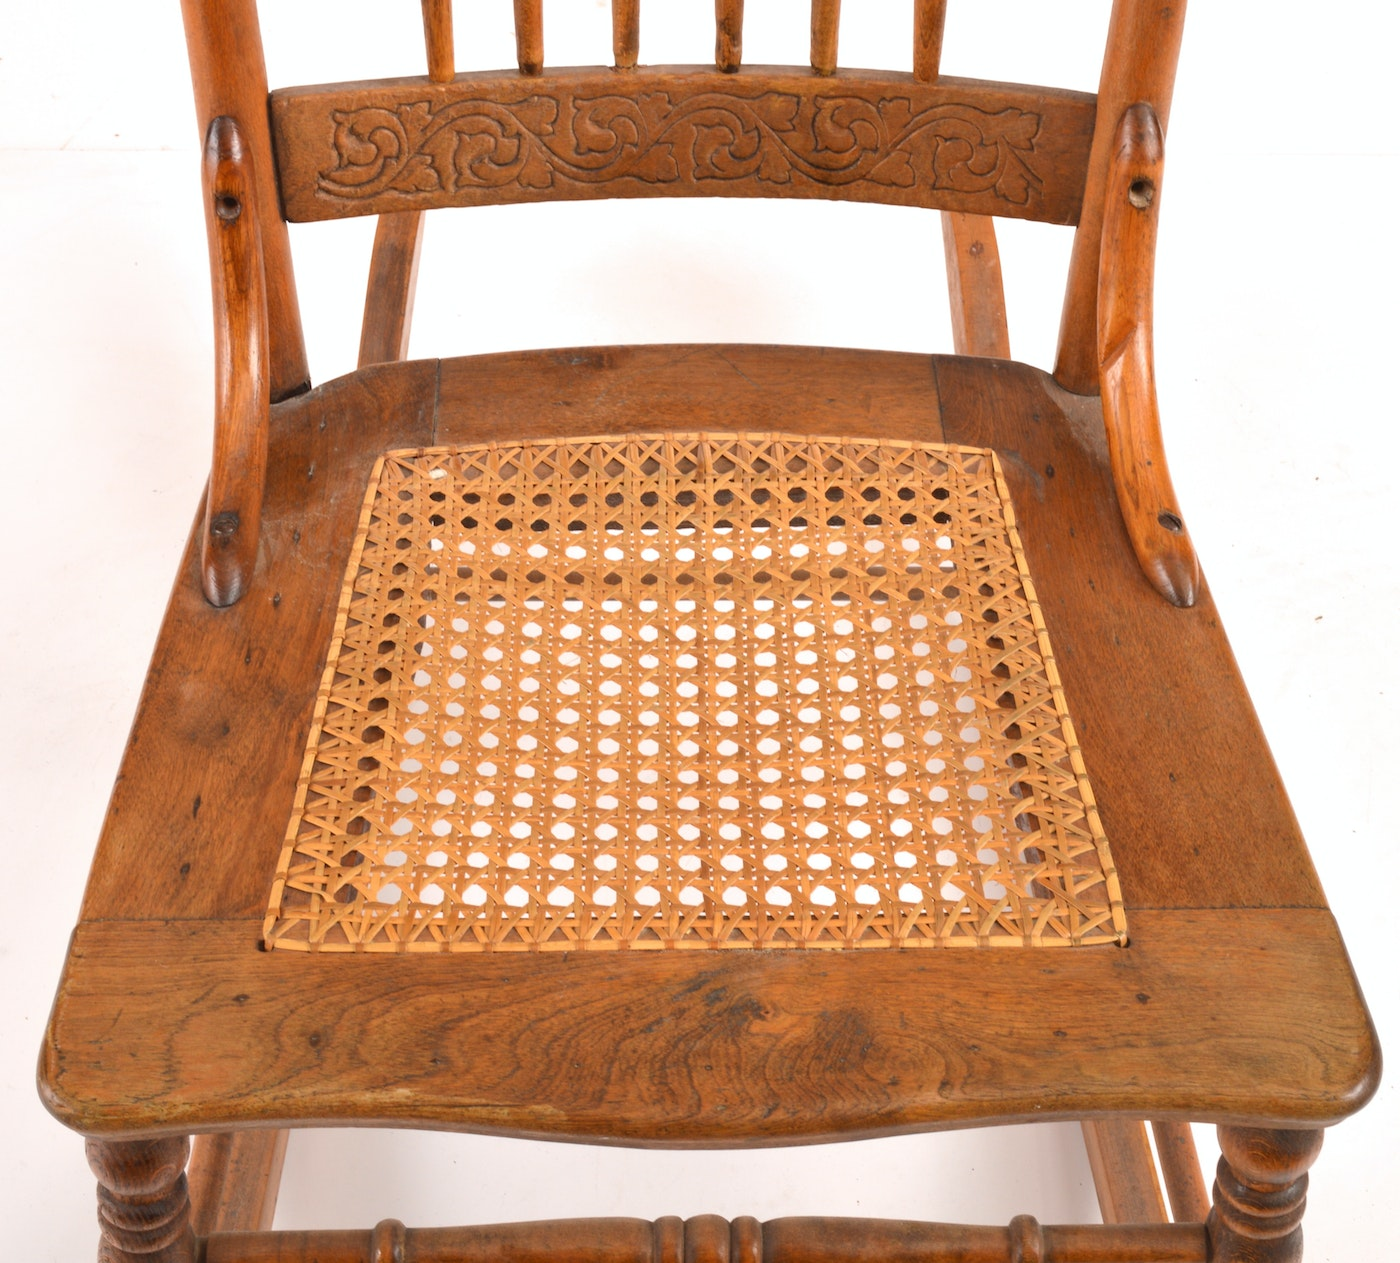 Antique Rocking Chair With Carved Crest Rail : EBTH